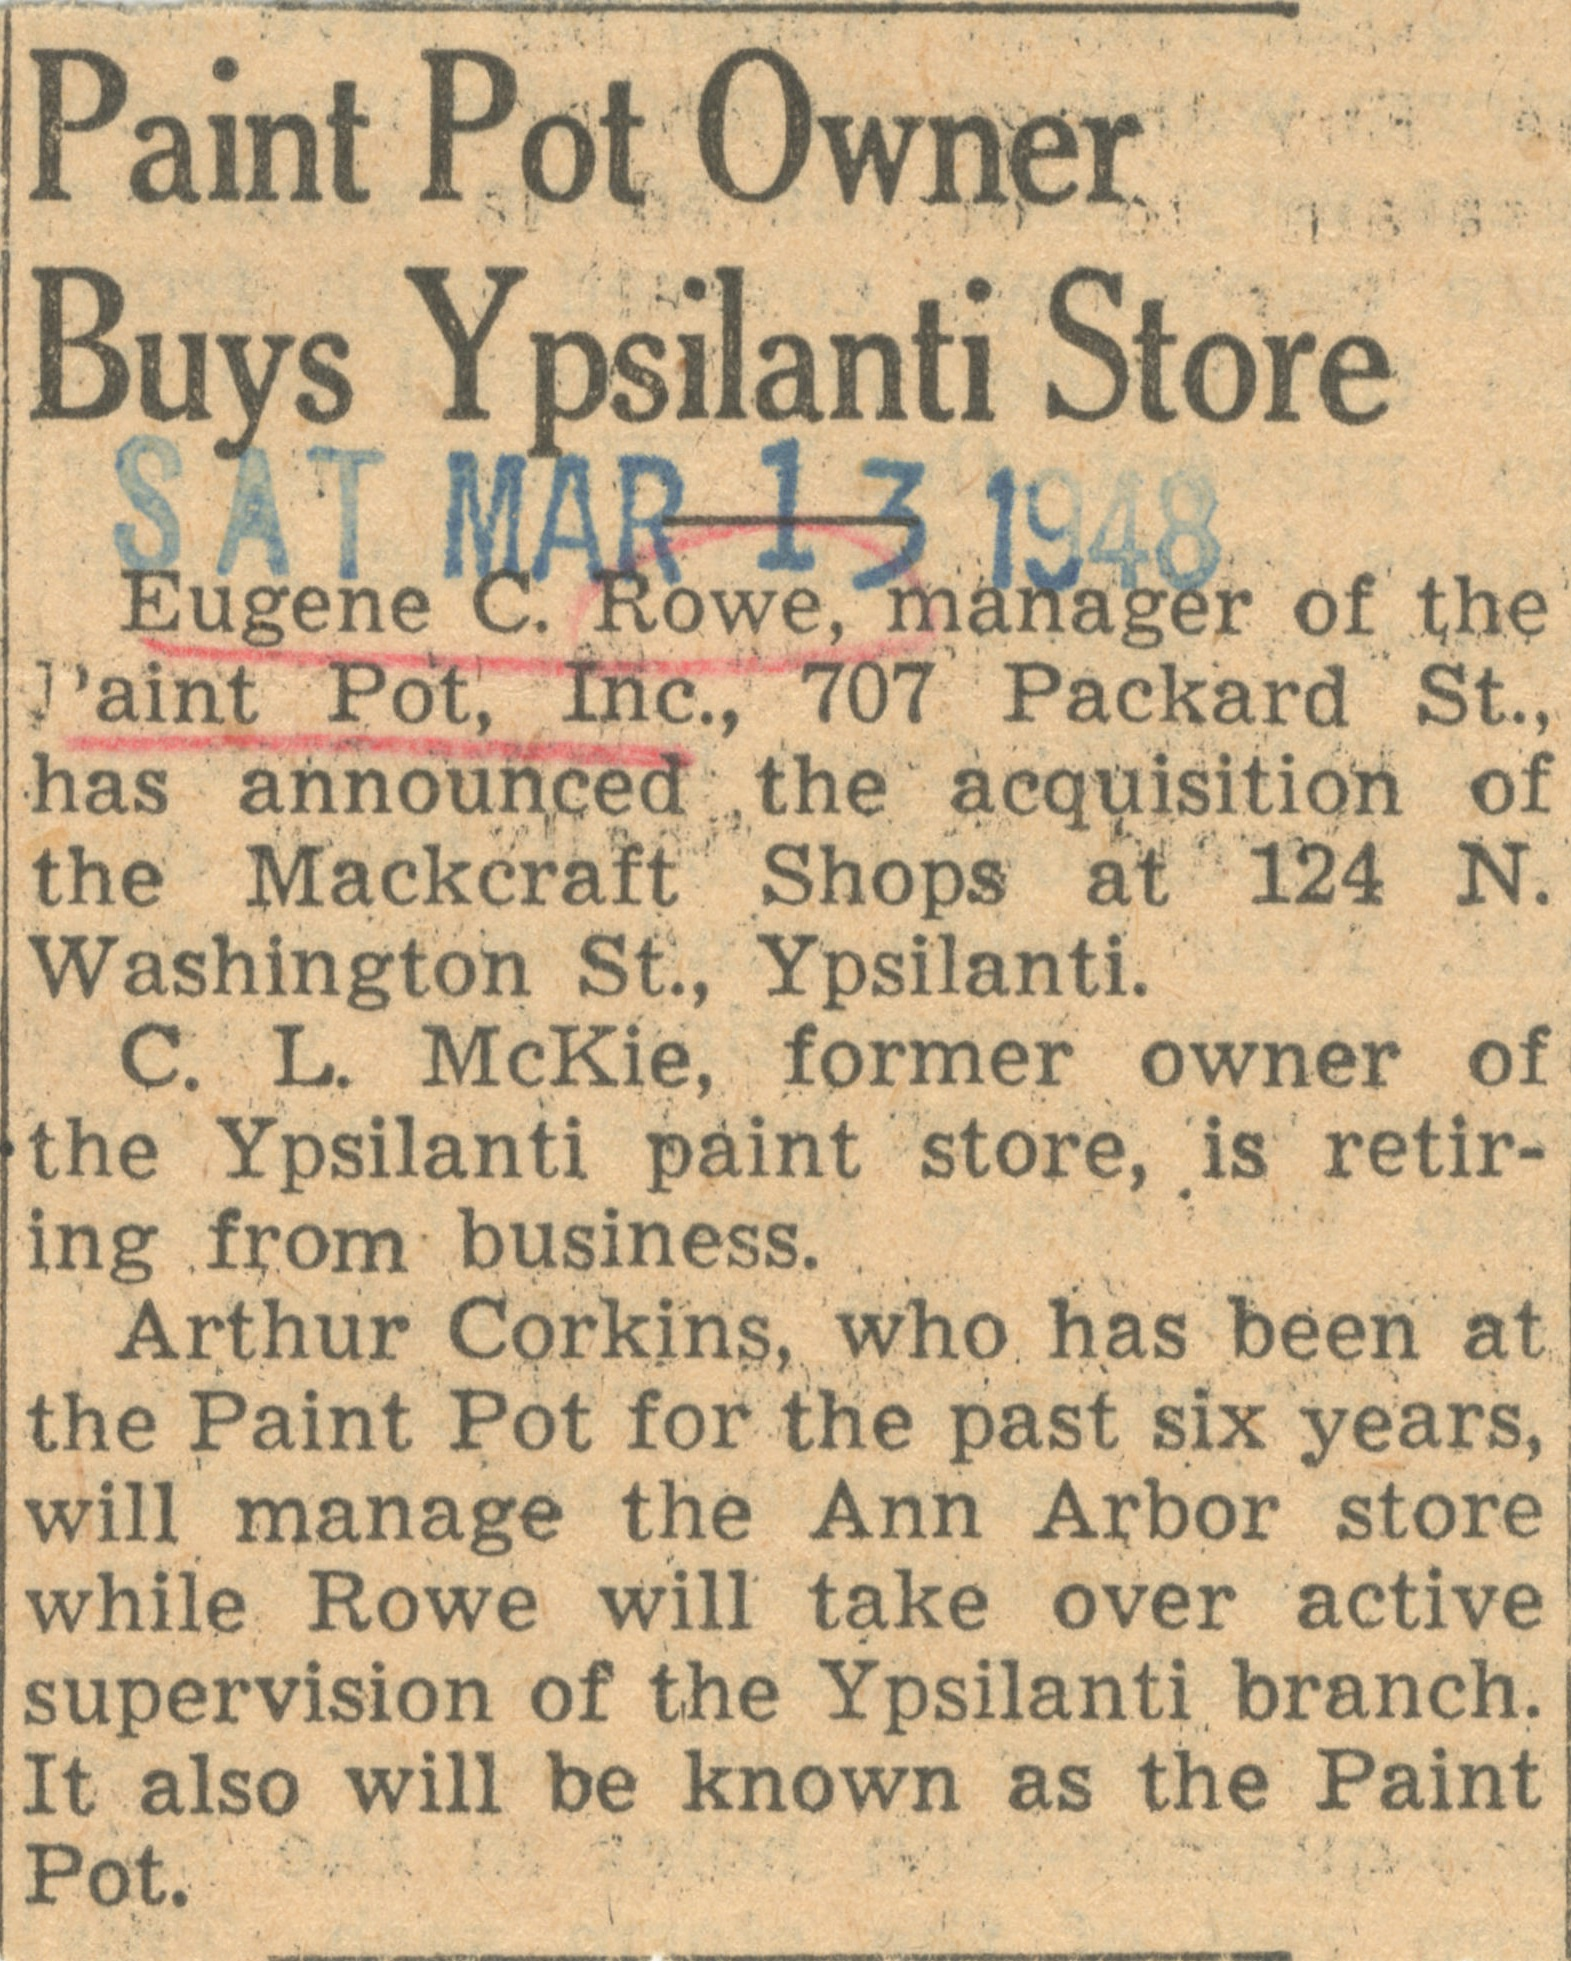 Paint Pot Owner Buys Ypsilanti Store image